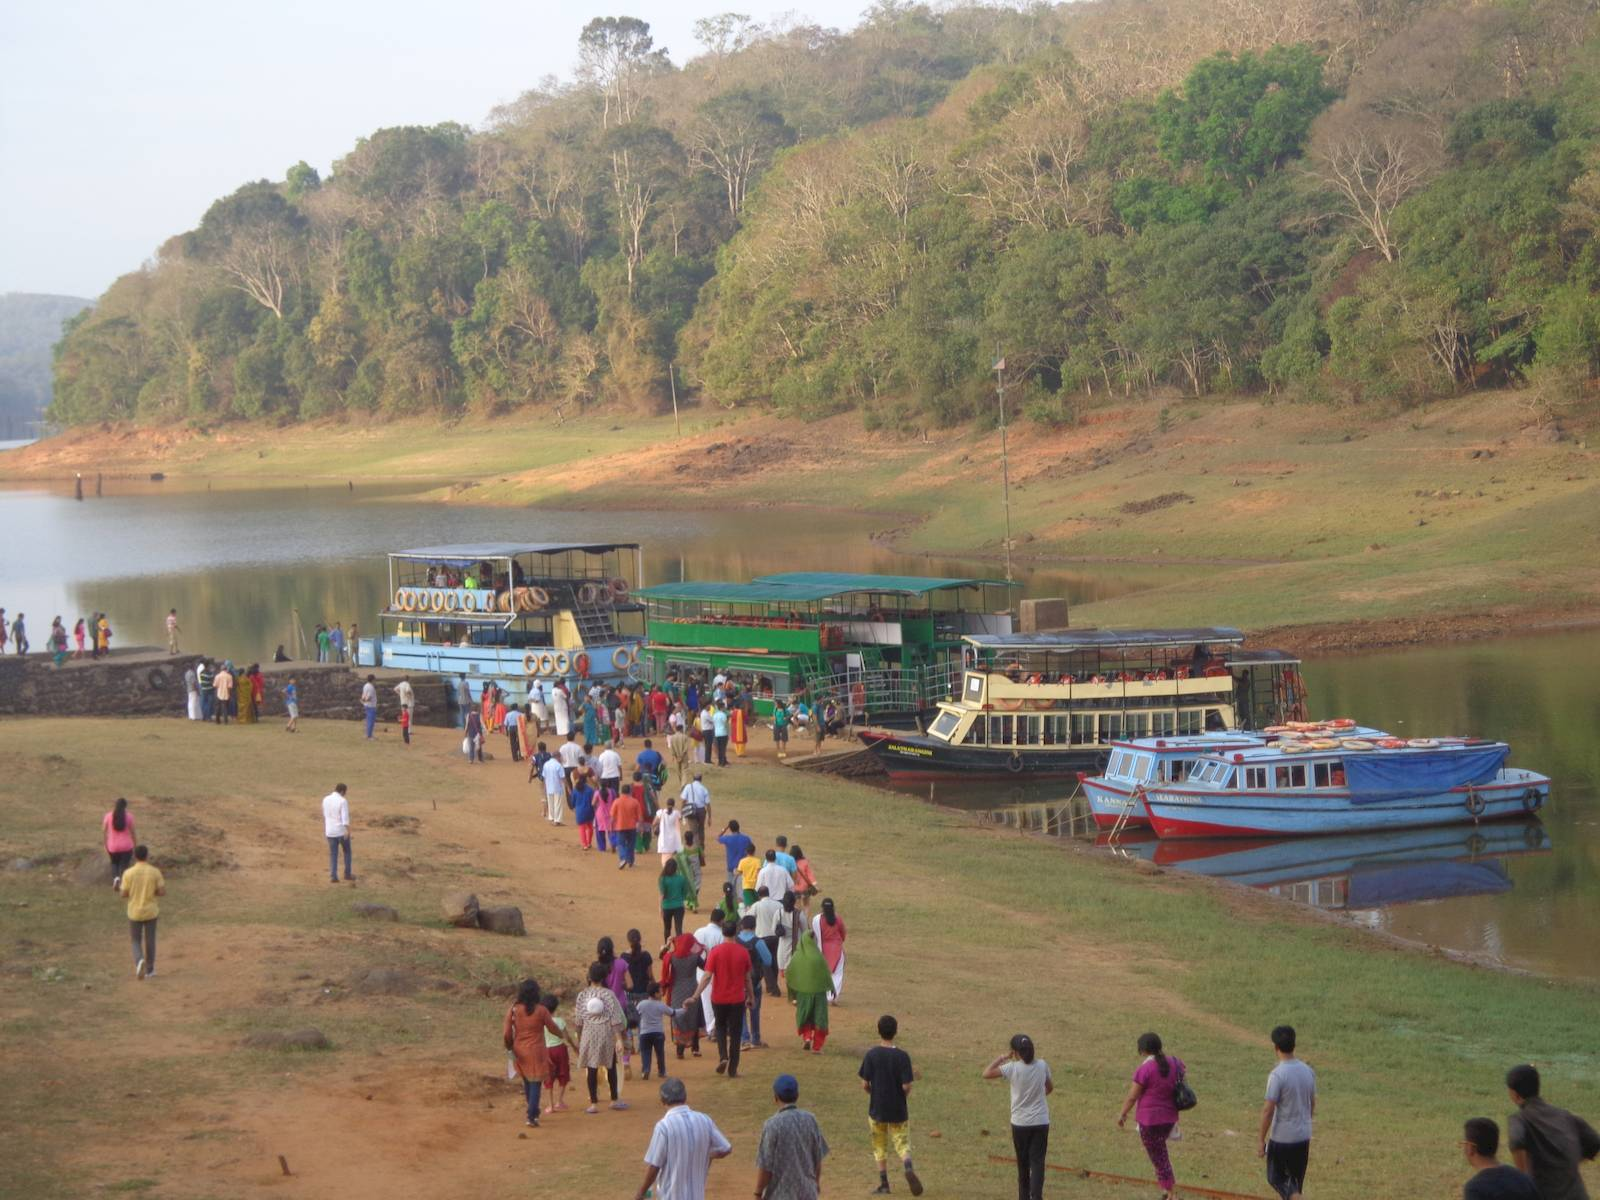 Boats at the Periyar Lake